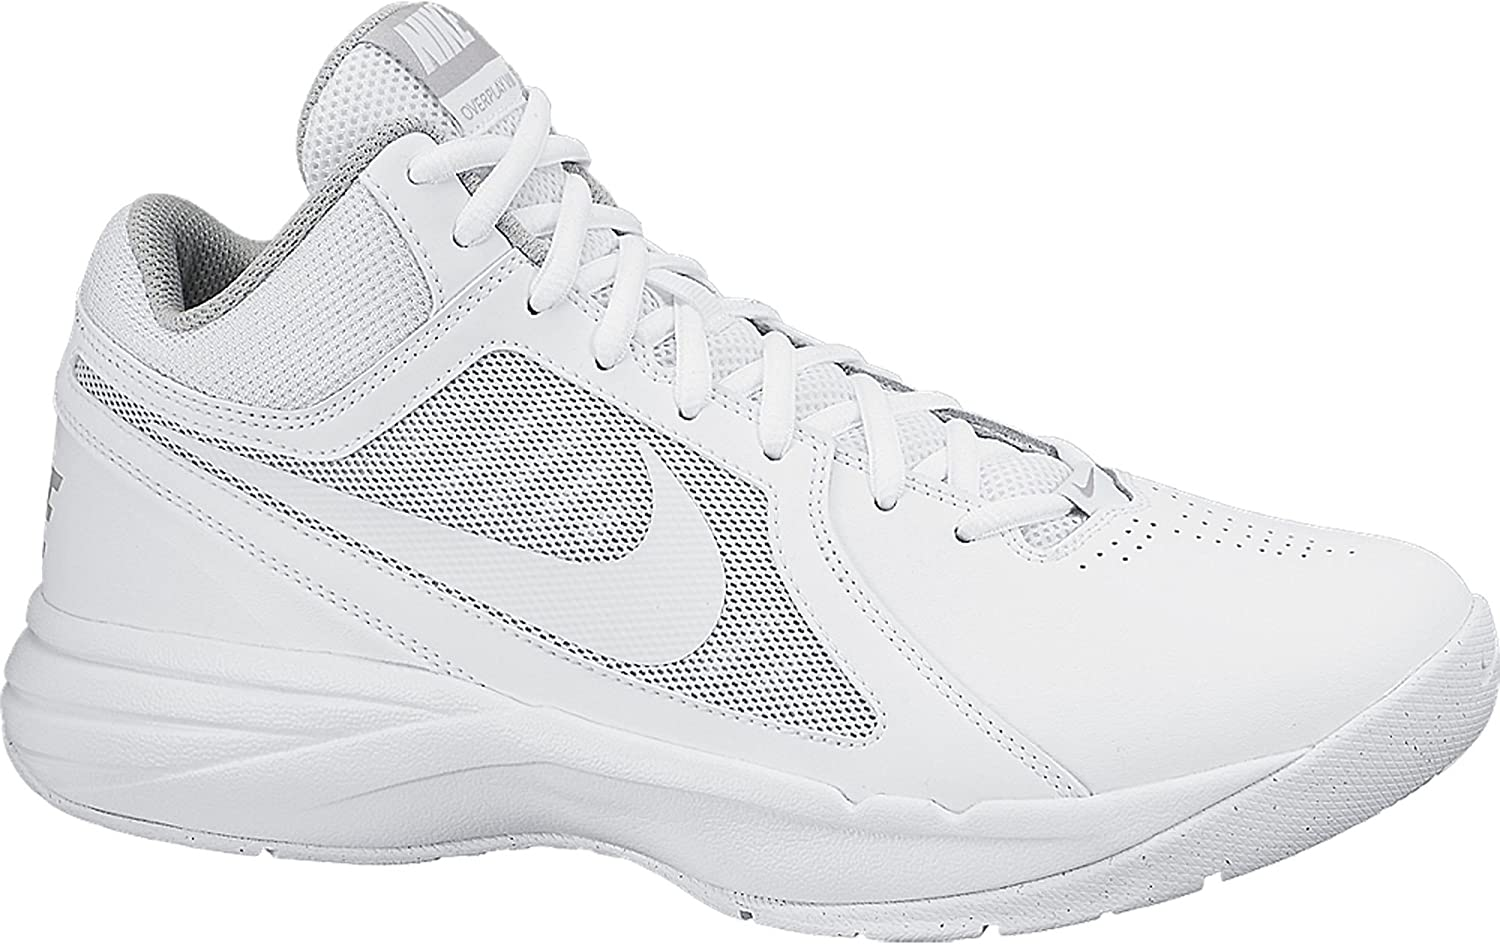 Overplay Viii, Men's Basketball Shoes